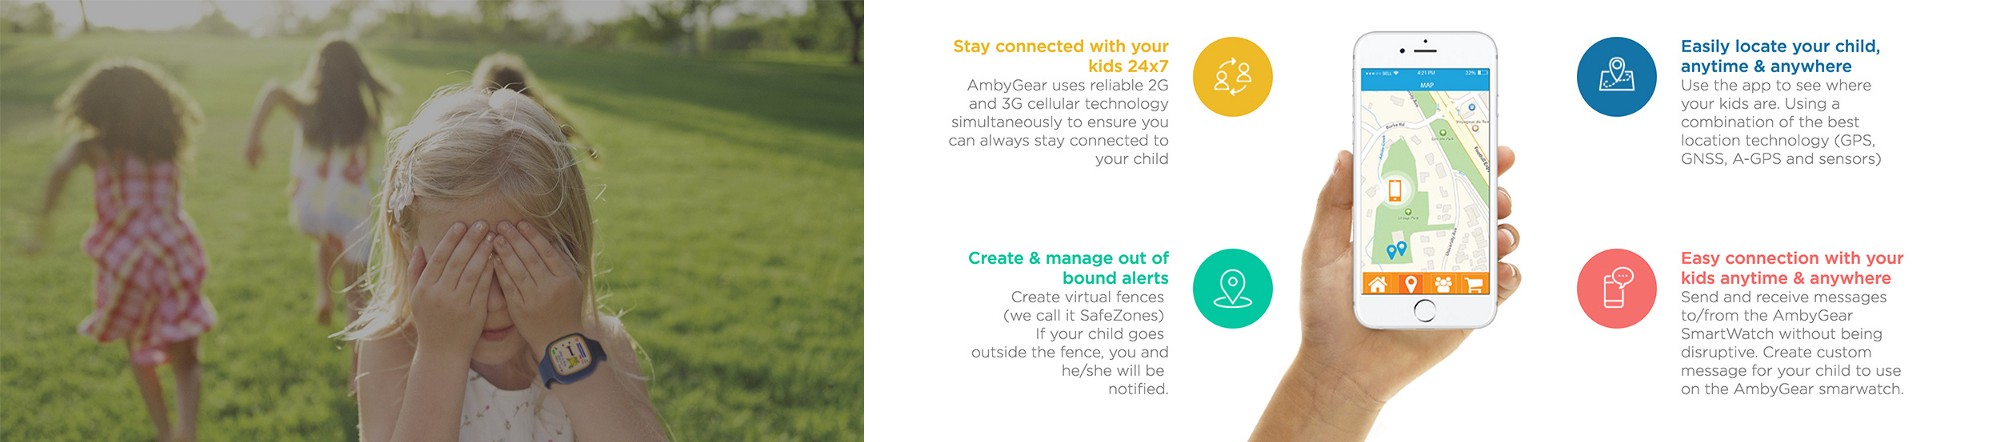 AmbyGear Smartwatch and app features.